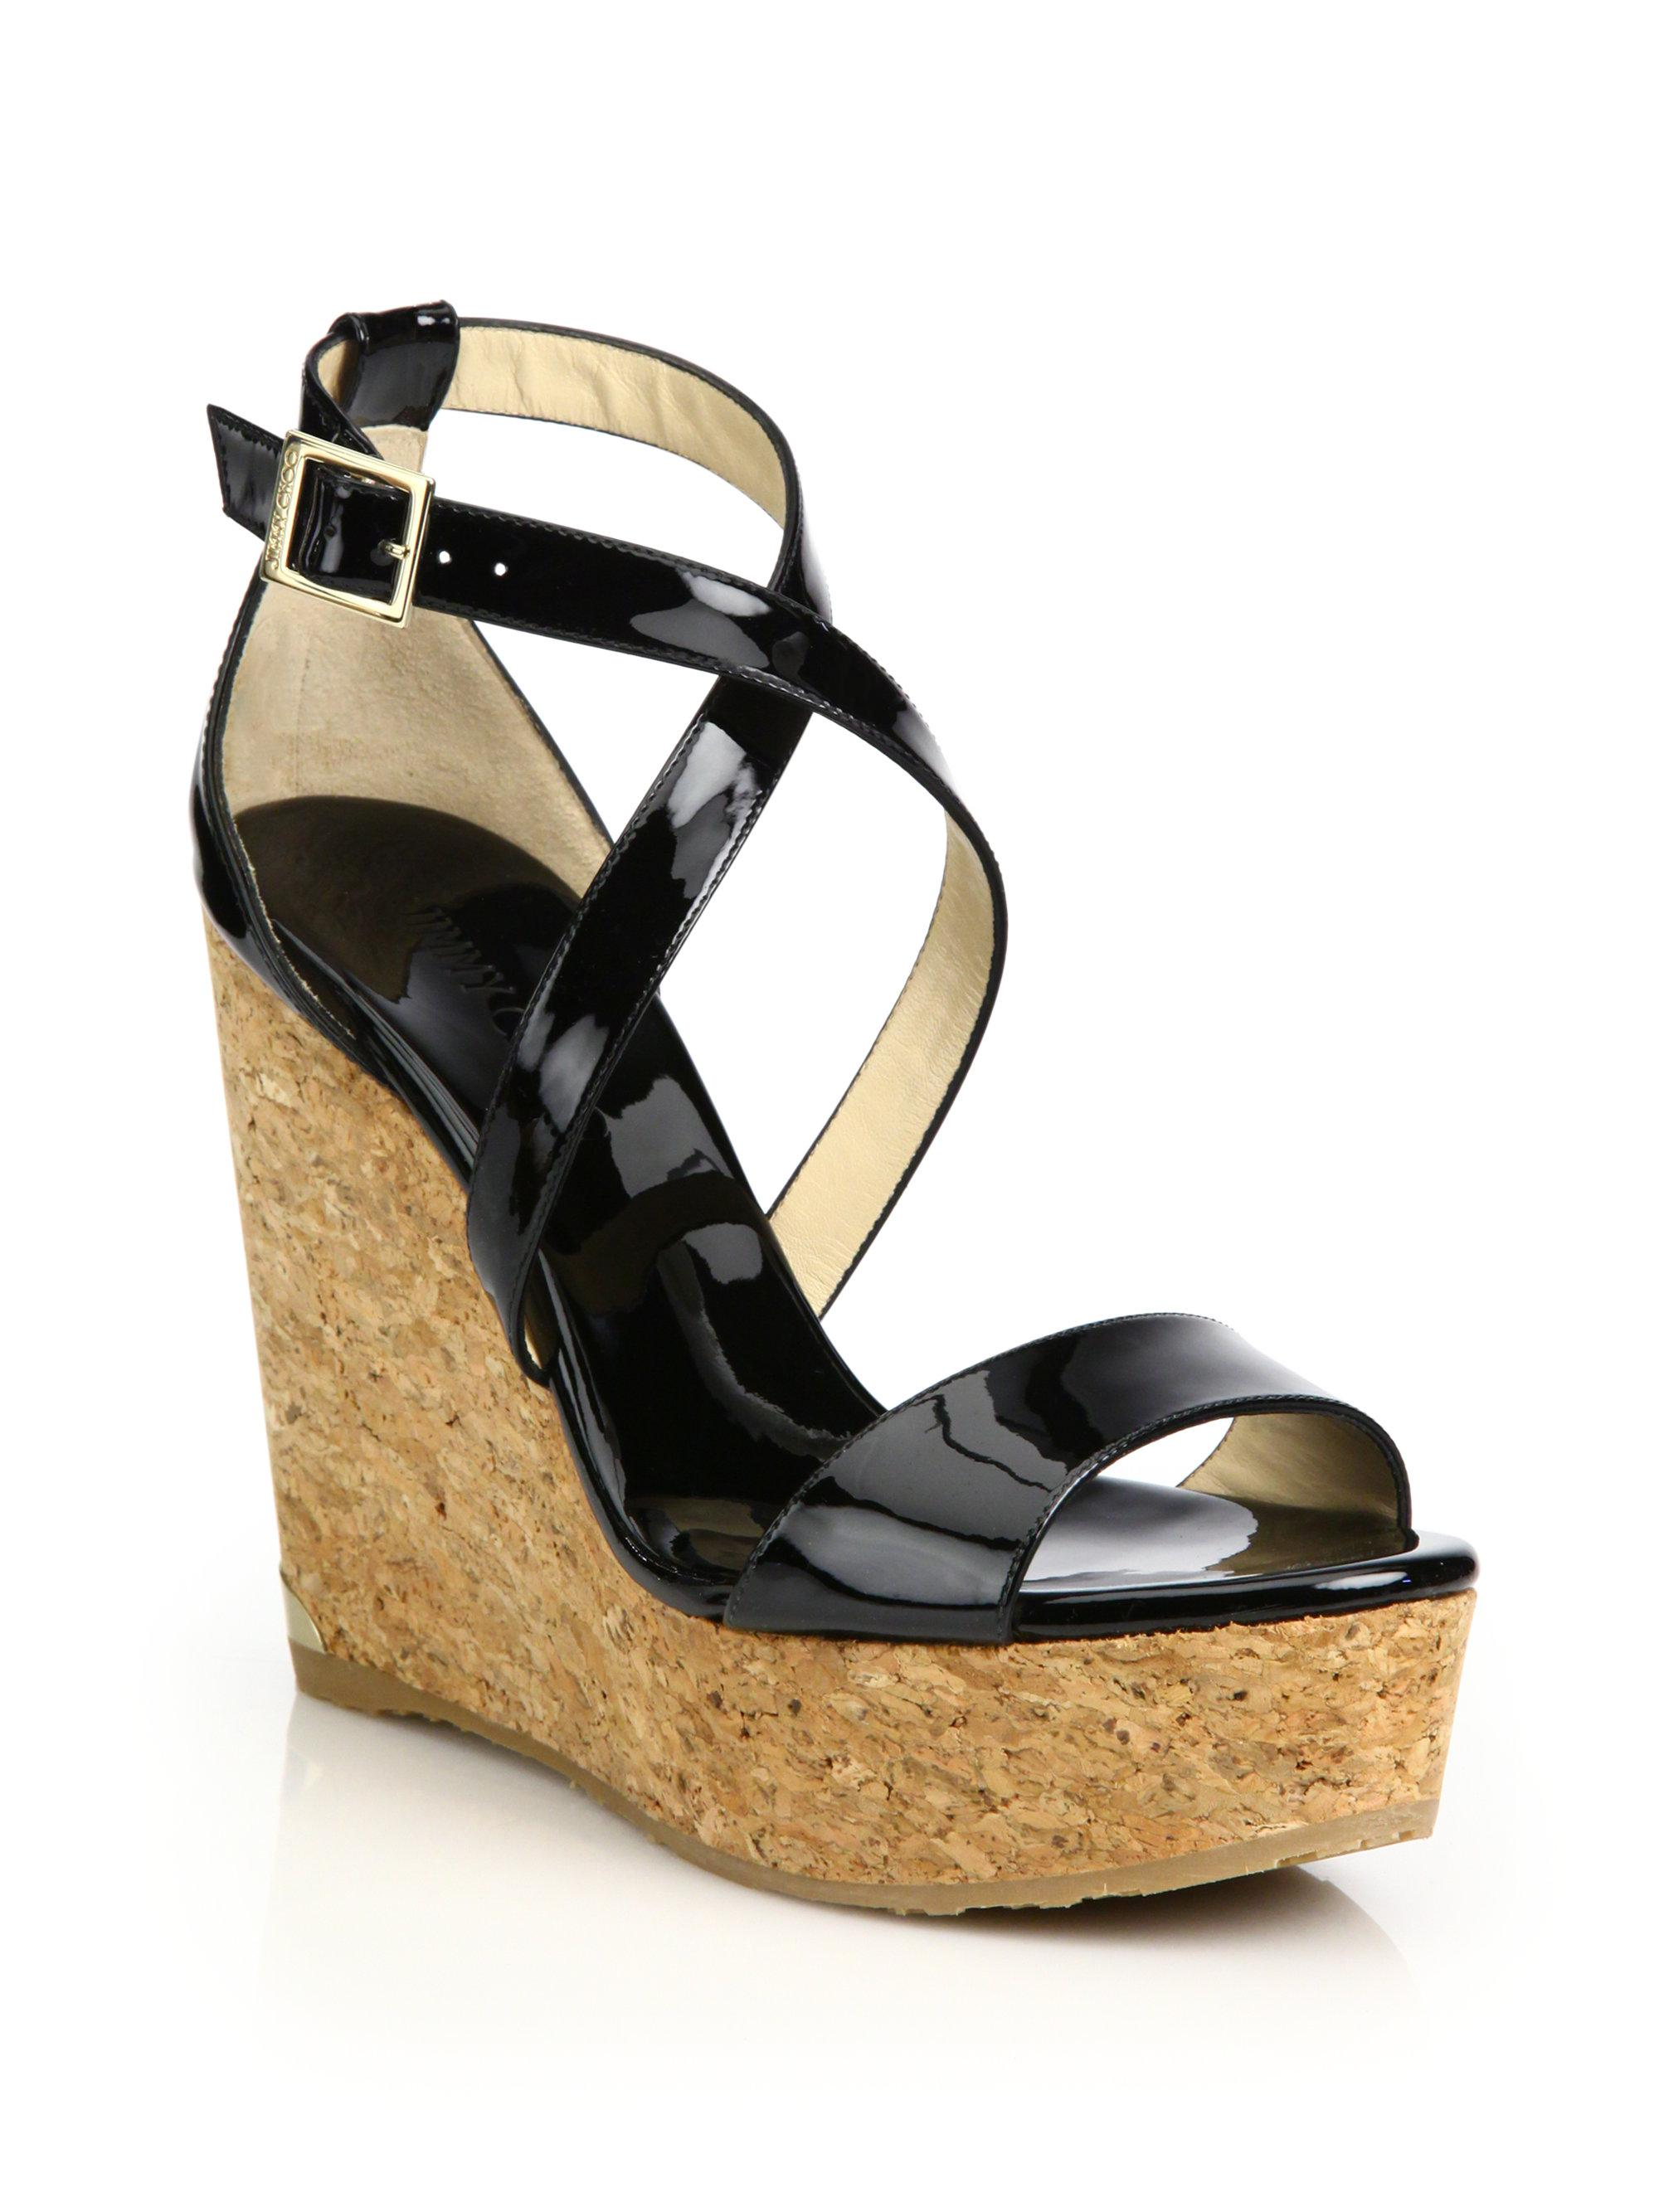 Jimmy Choo Cork Platform Wedge Sandals lowest price very cheap price 2015 sale online L7O9yzhz1